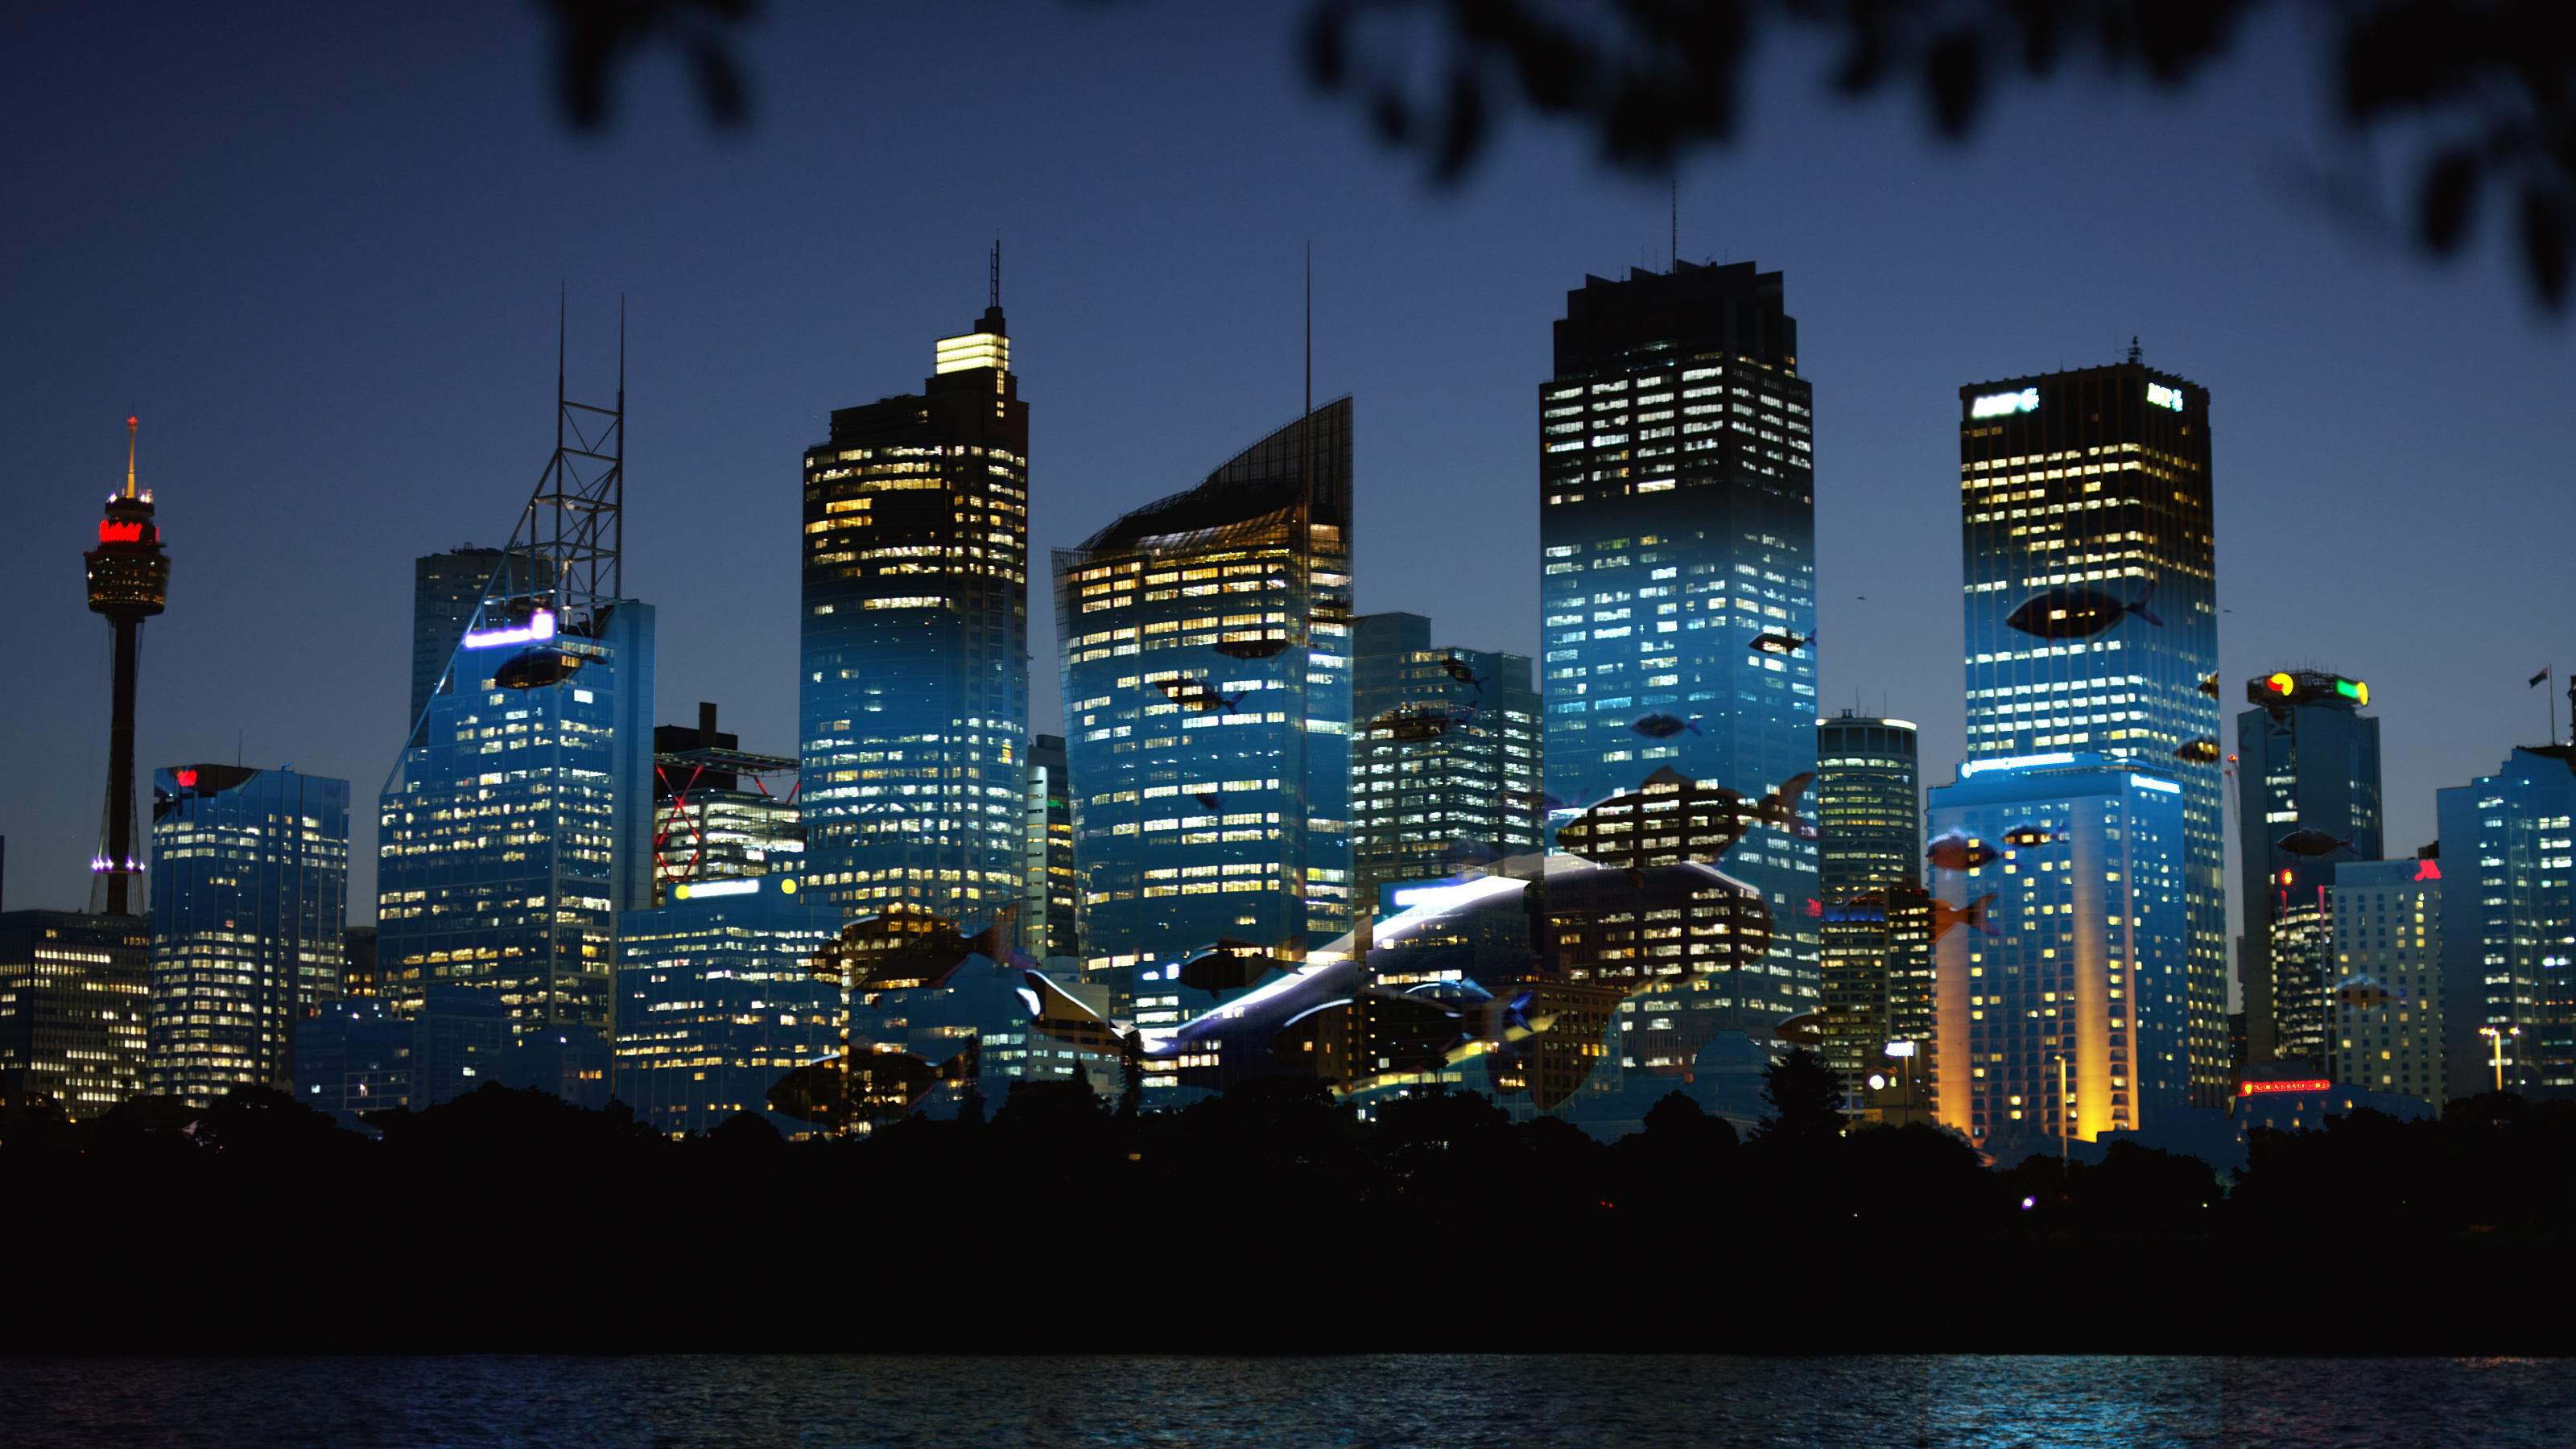 SYD_Theme_LED_landscape_001 (02699)